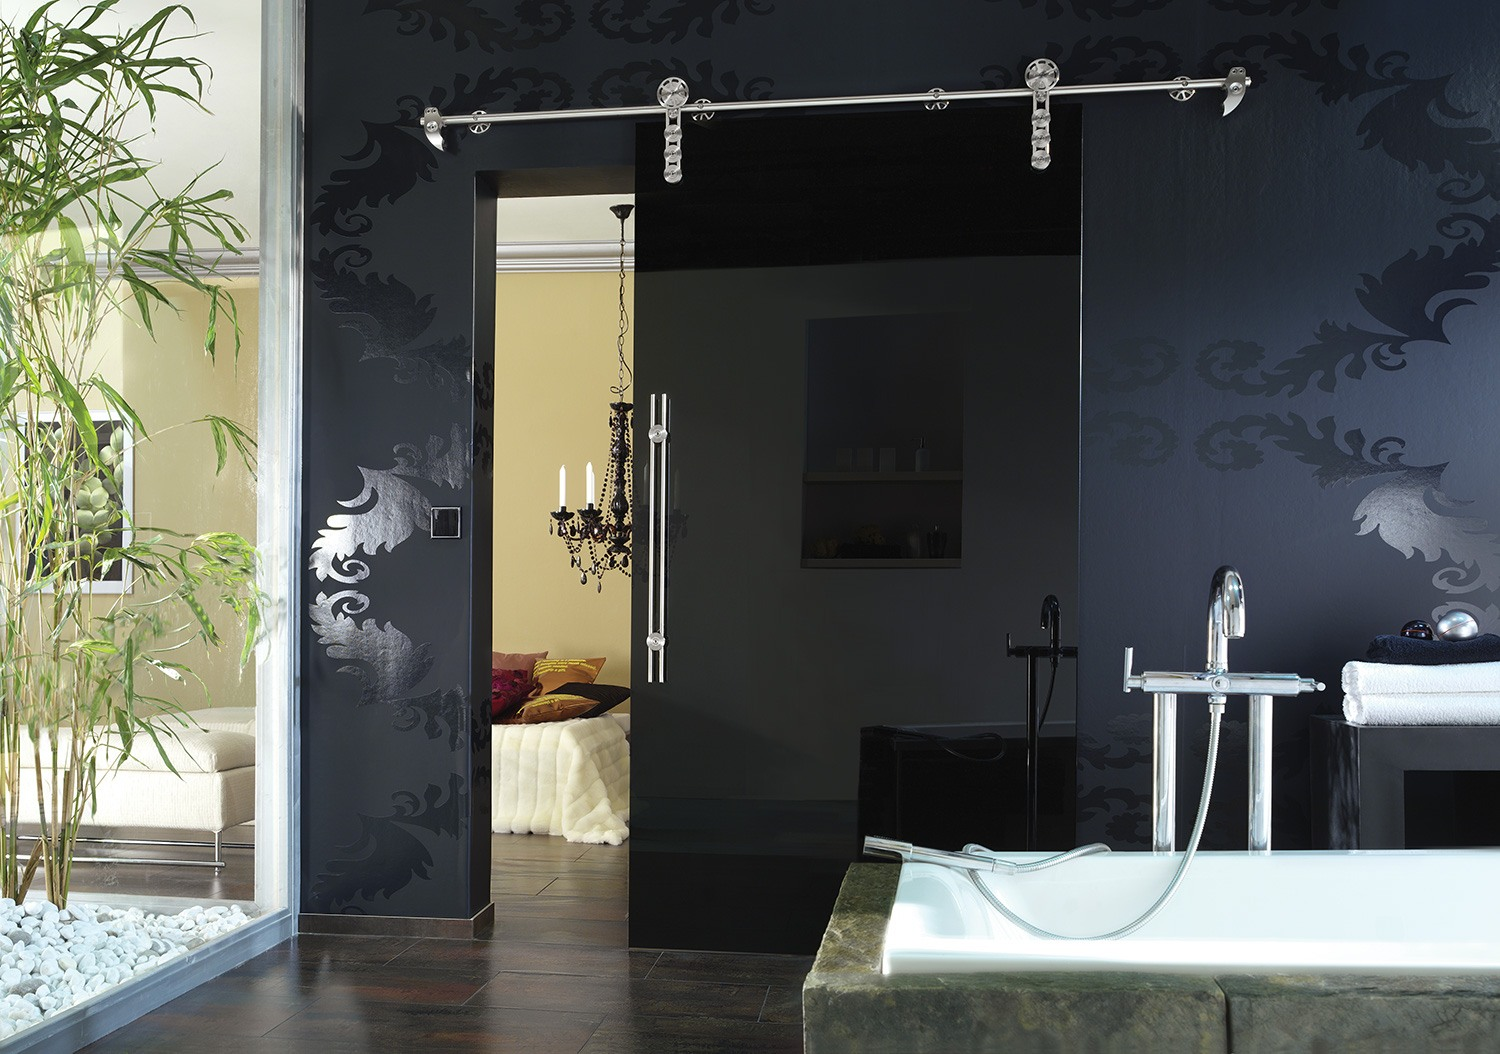 Interior Glass Doors: Best Design Ideas and Application. Dark colored room